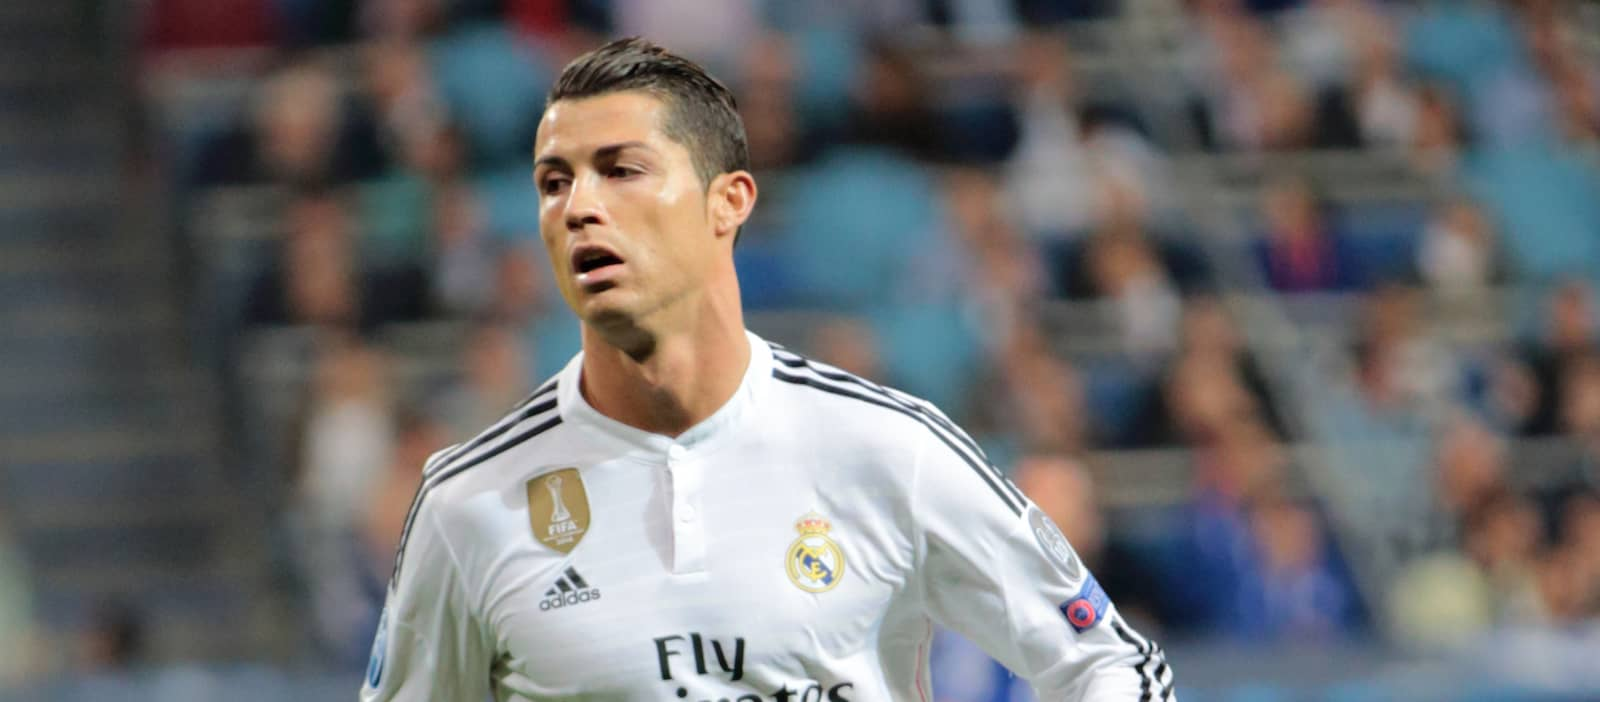 Cristiano Ronaldo's instructs Real Madrid to let him leave to Manchester United or PSG for €100m